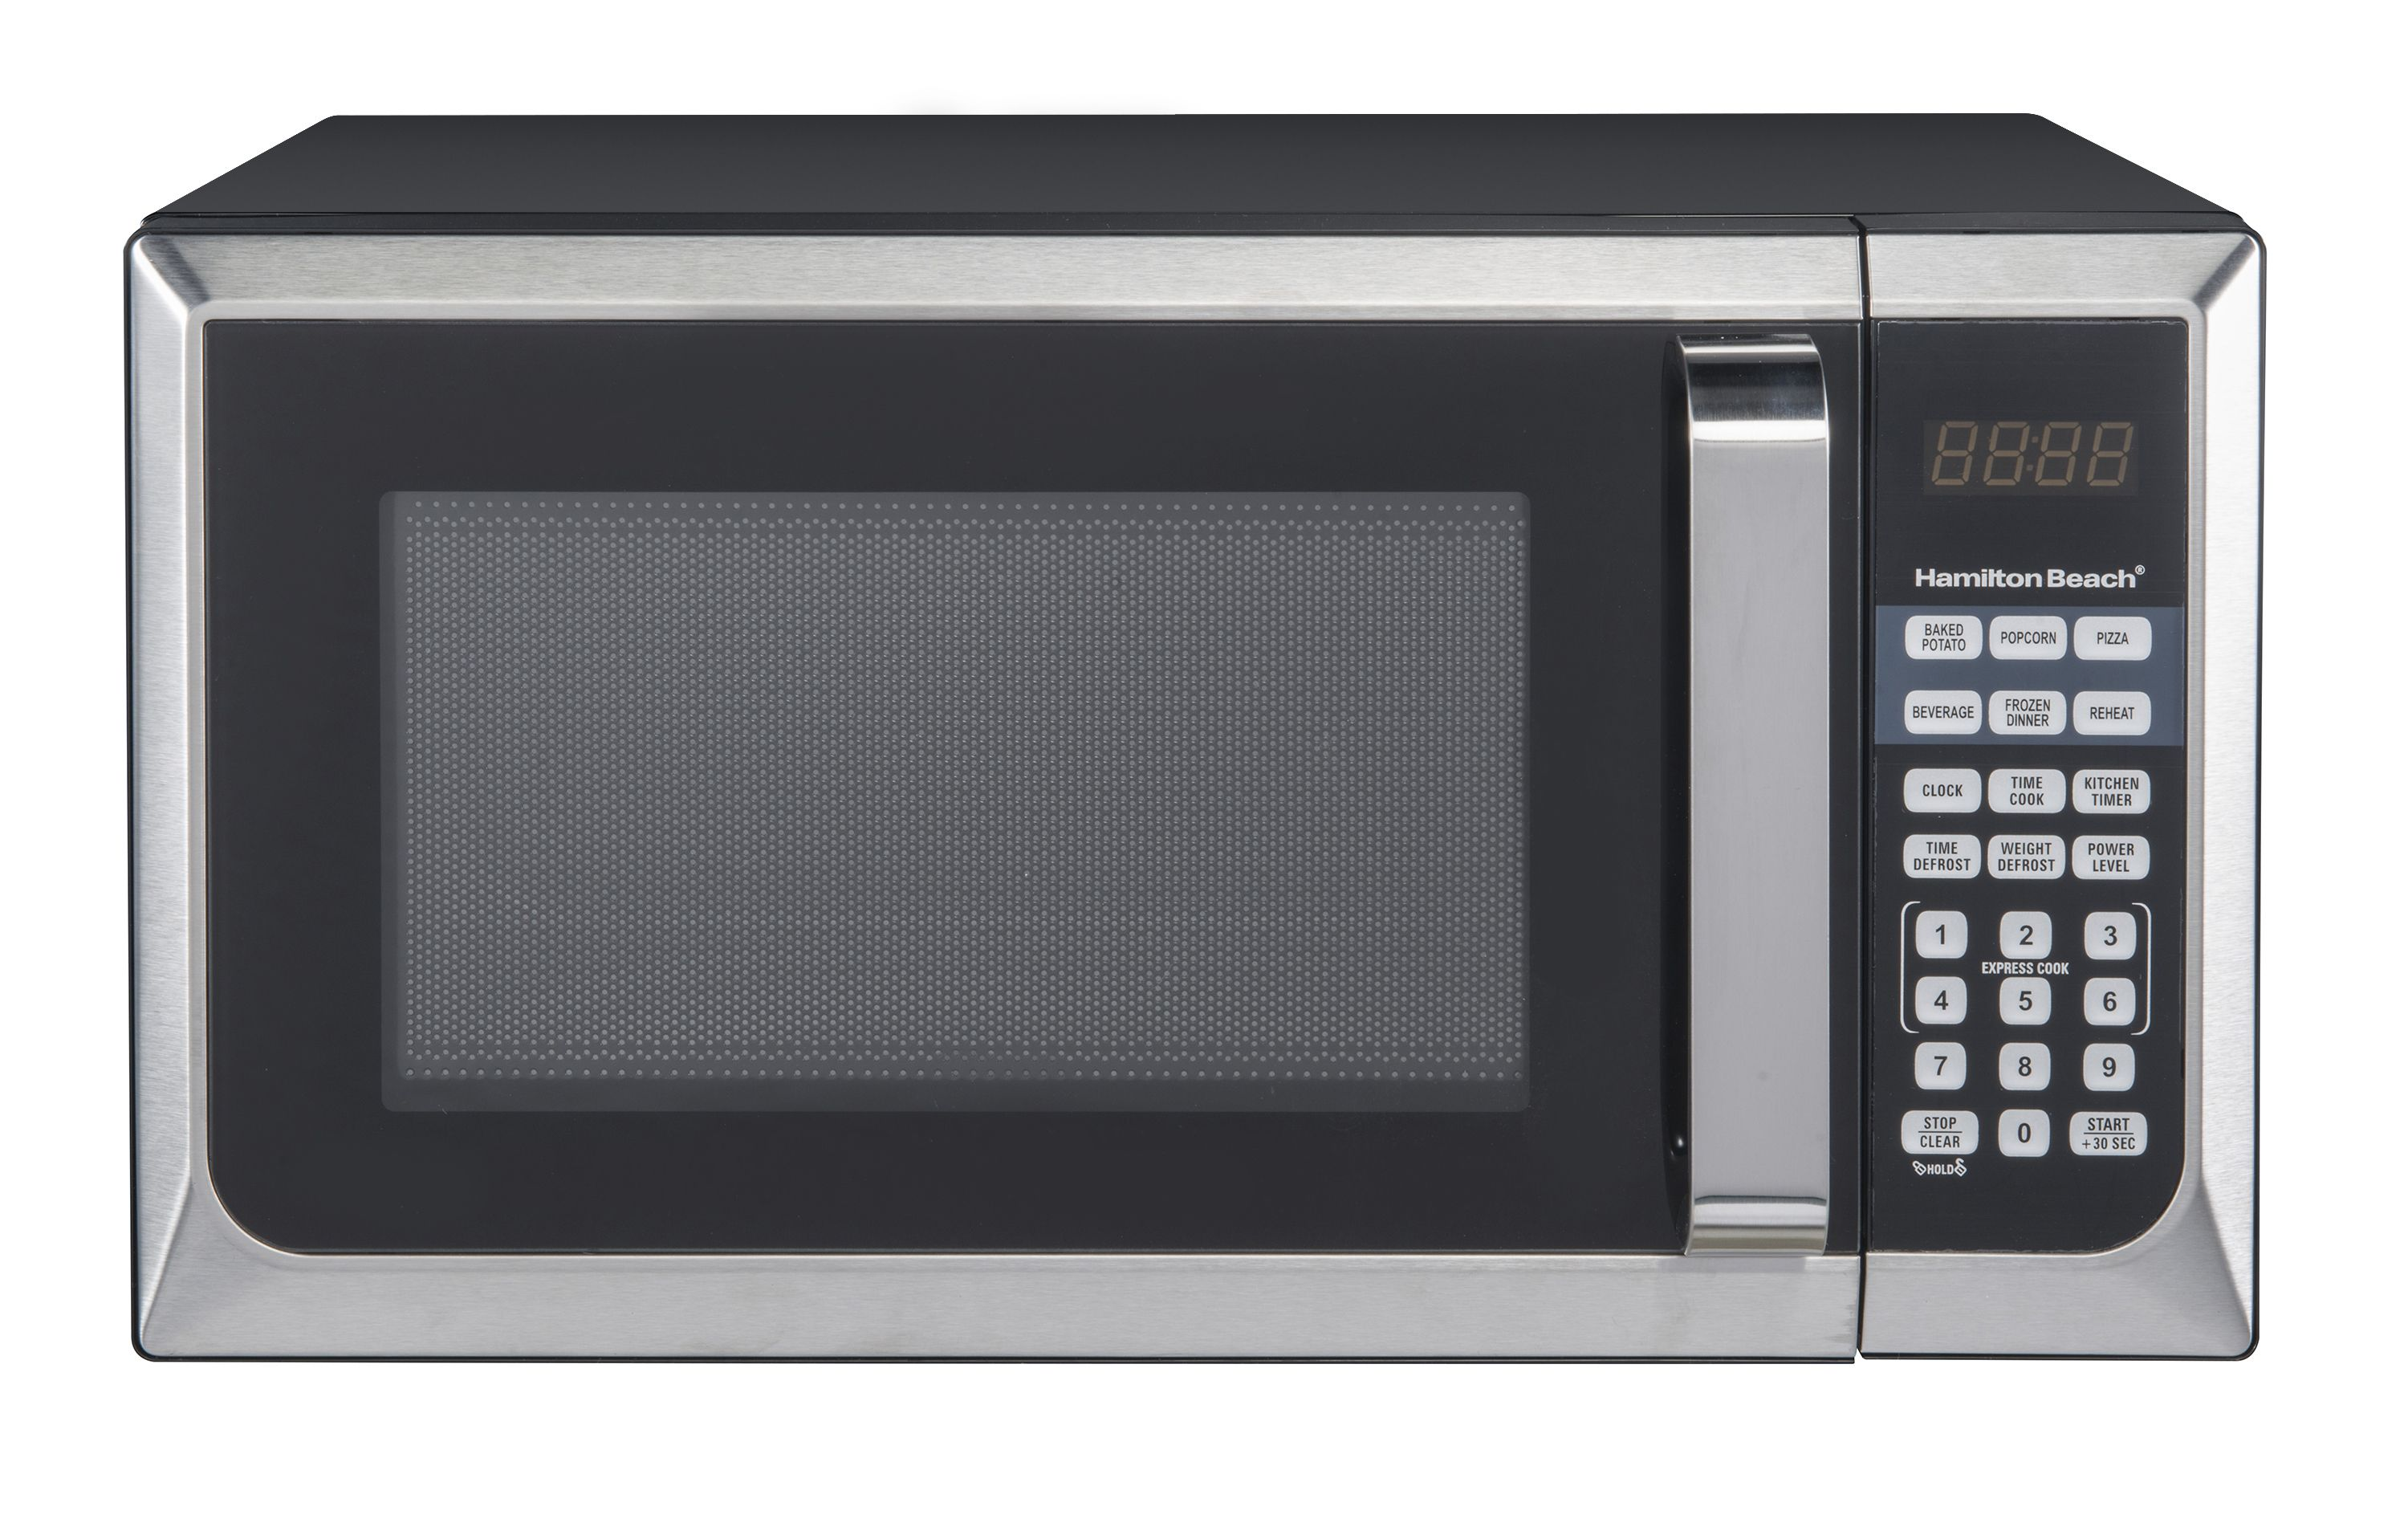 Mainstays 0 7 Cu Ft 700w Stainless Steel Microwave With 10 Power